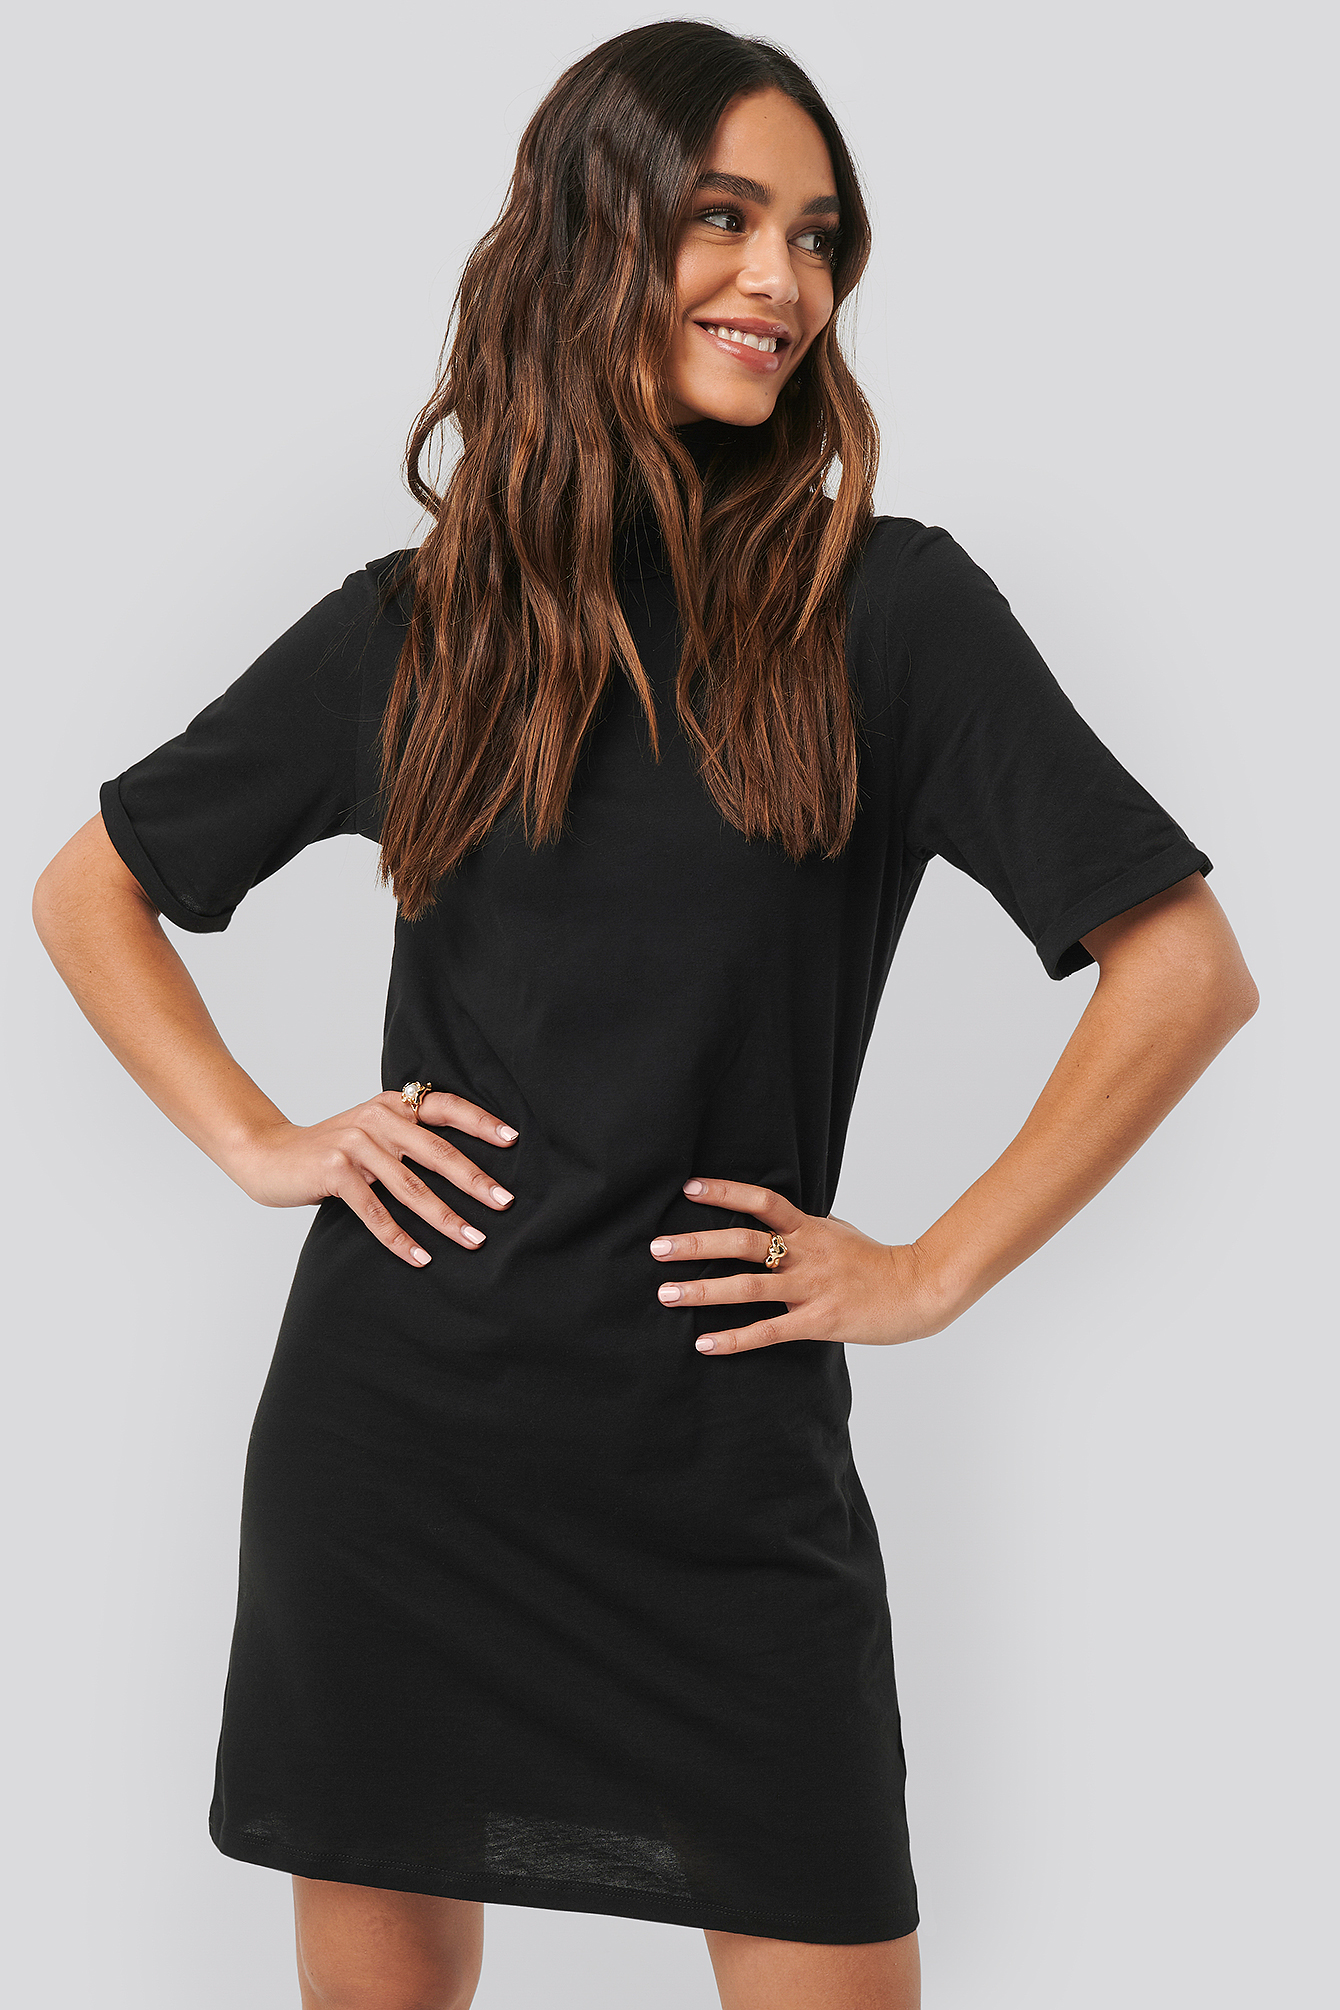 Black Polo Neck T-shirt Dress